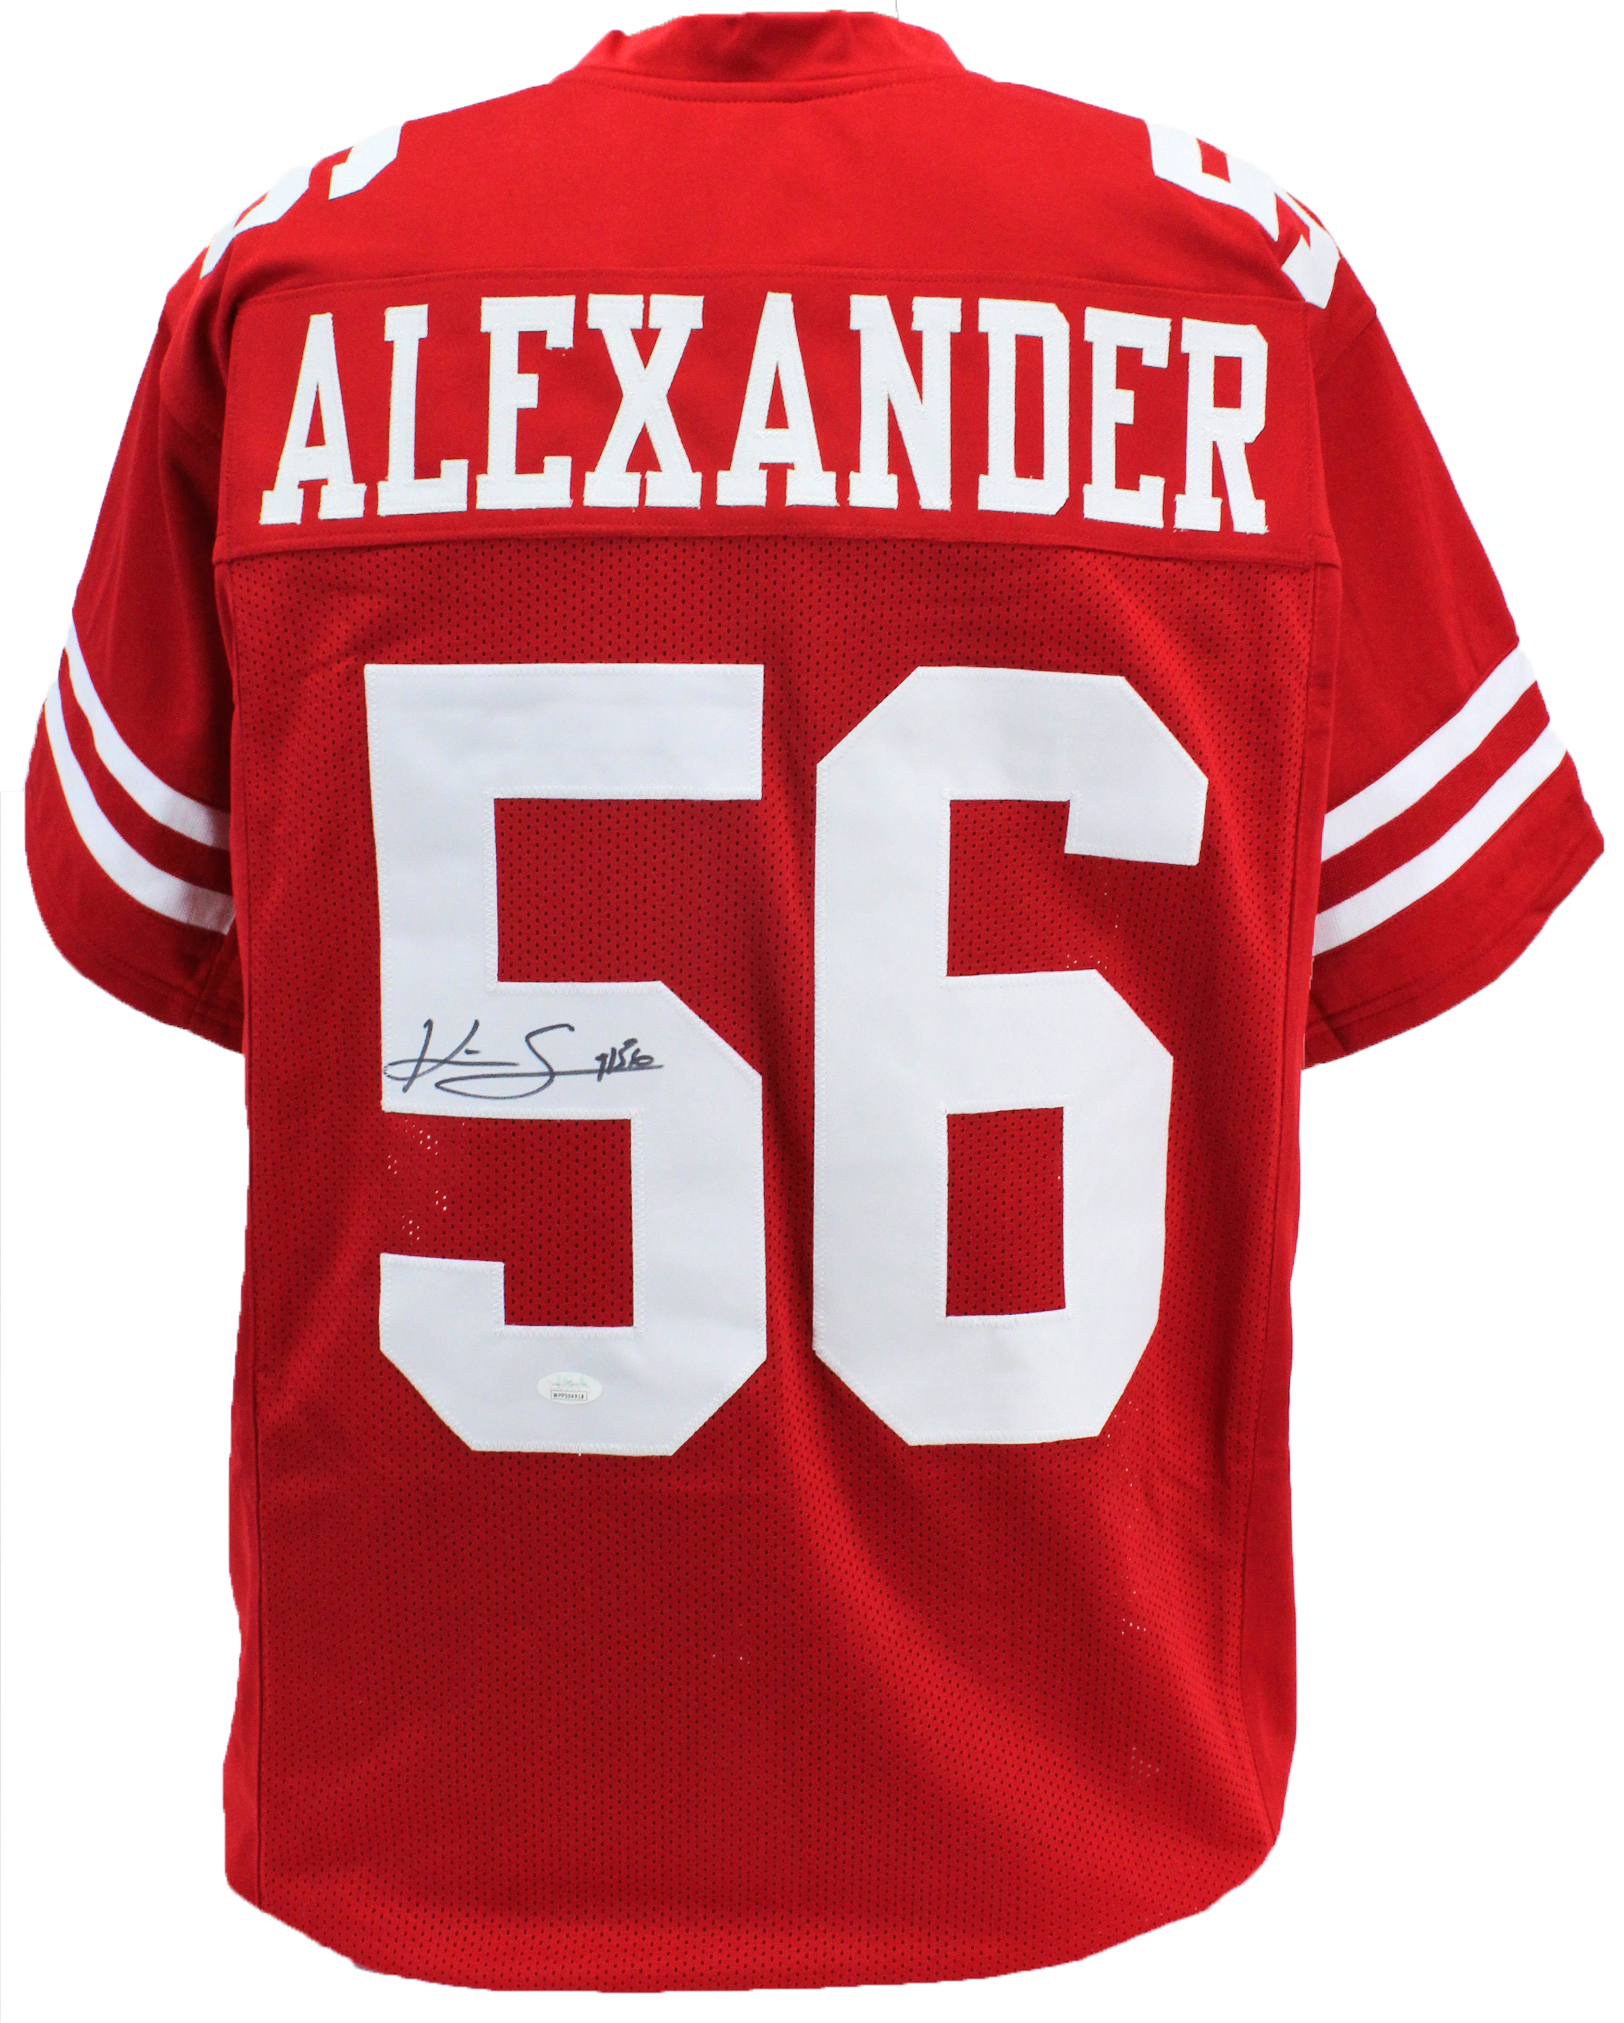 competitive price 435f1 a37cd Details about 49ers Kwon Alexander Authentic Signed Red Jersey Autographed  JSA Witness